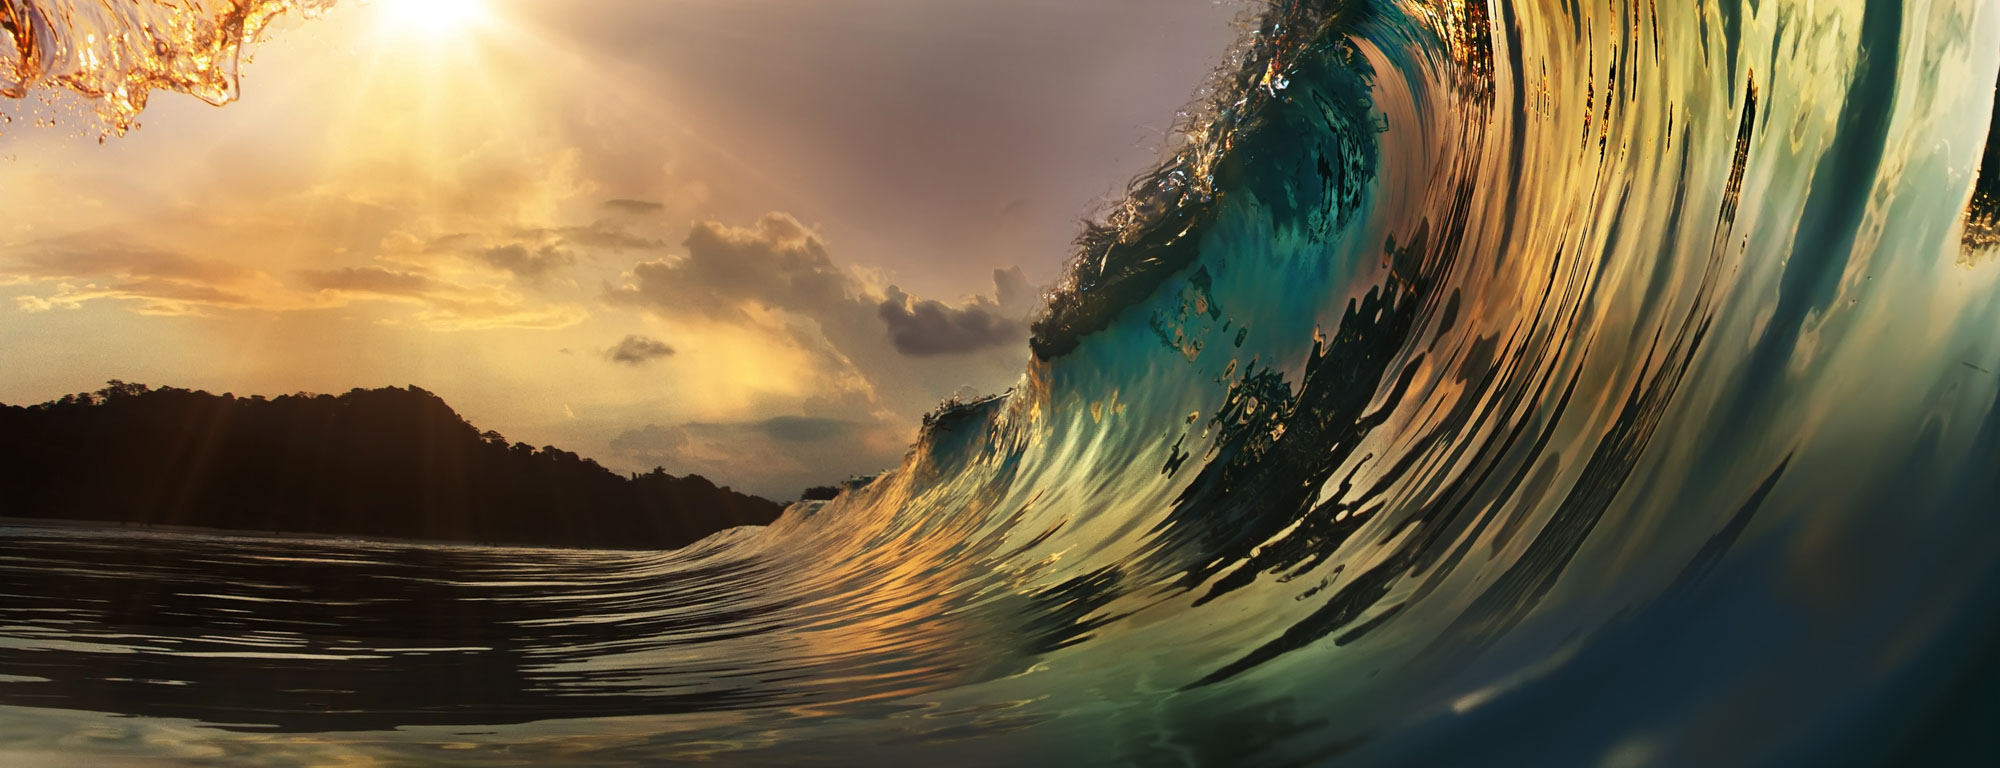 A really nice wave to go surfing on